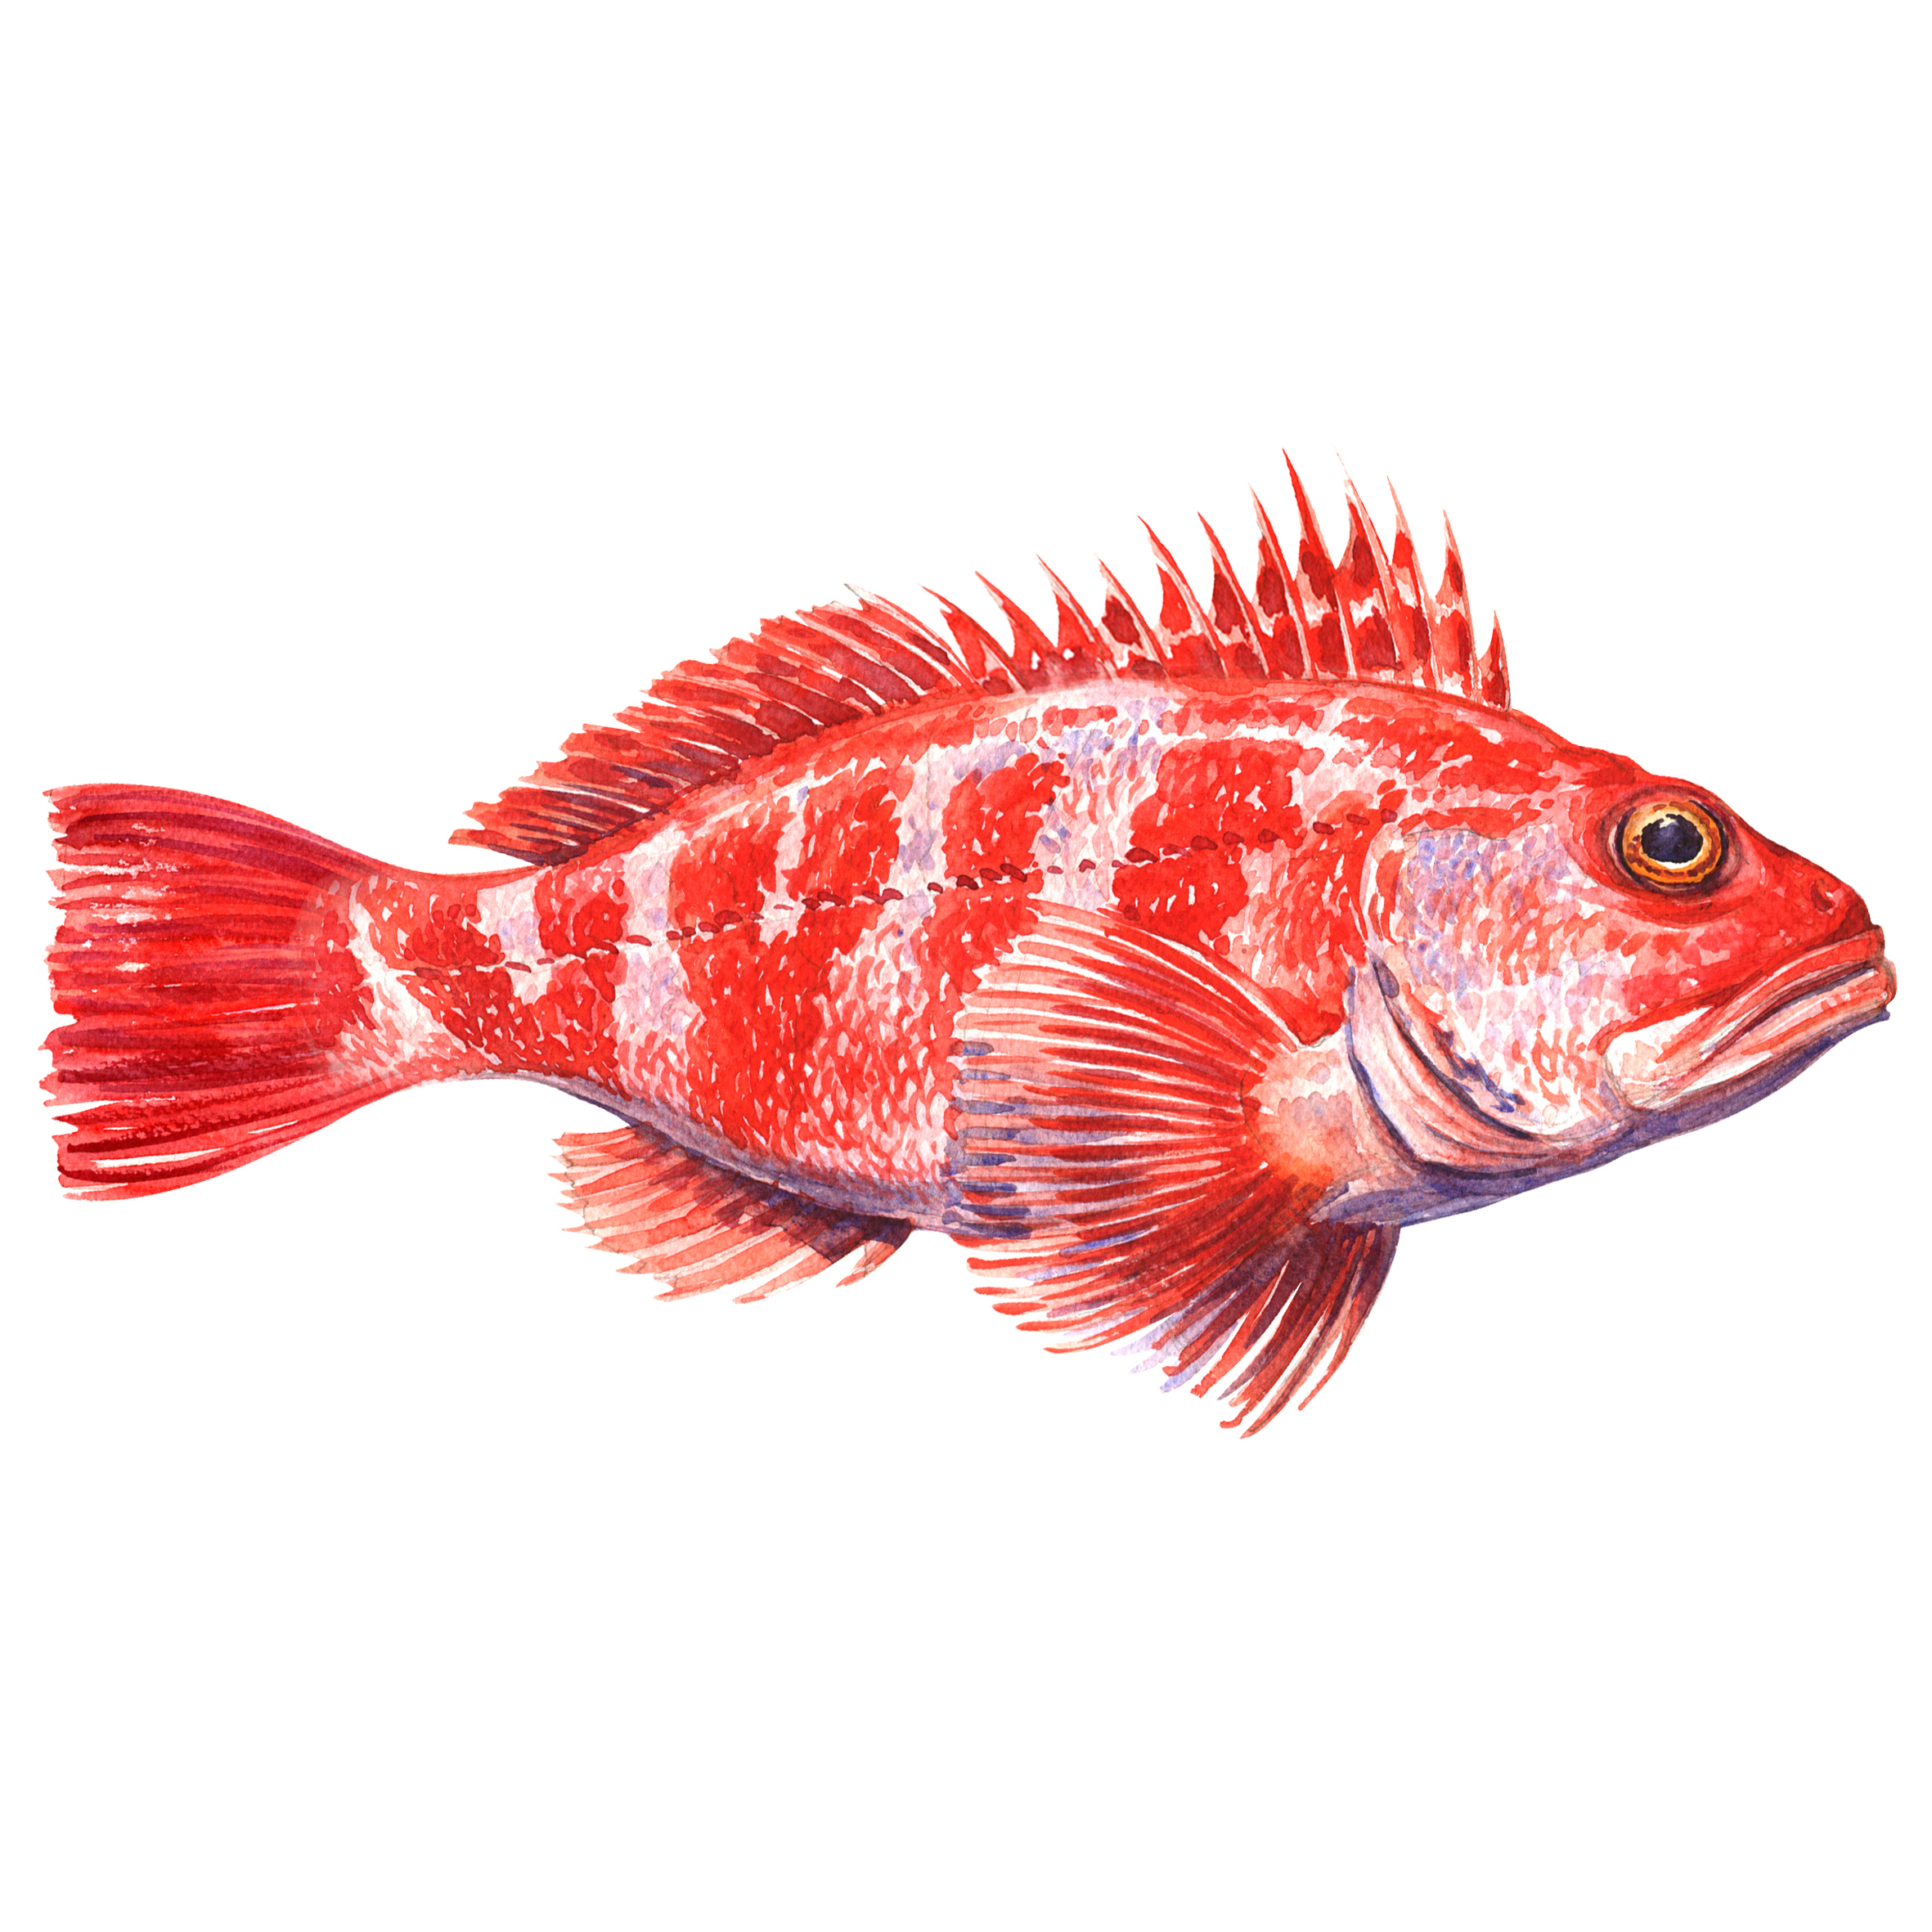 Maine Lobster Bait Crisis: Cooke Aquaculture Receives Approval for Blackbelly Rosefish